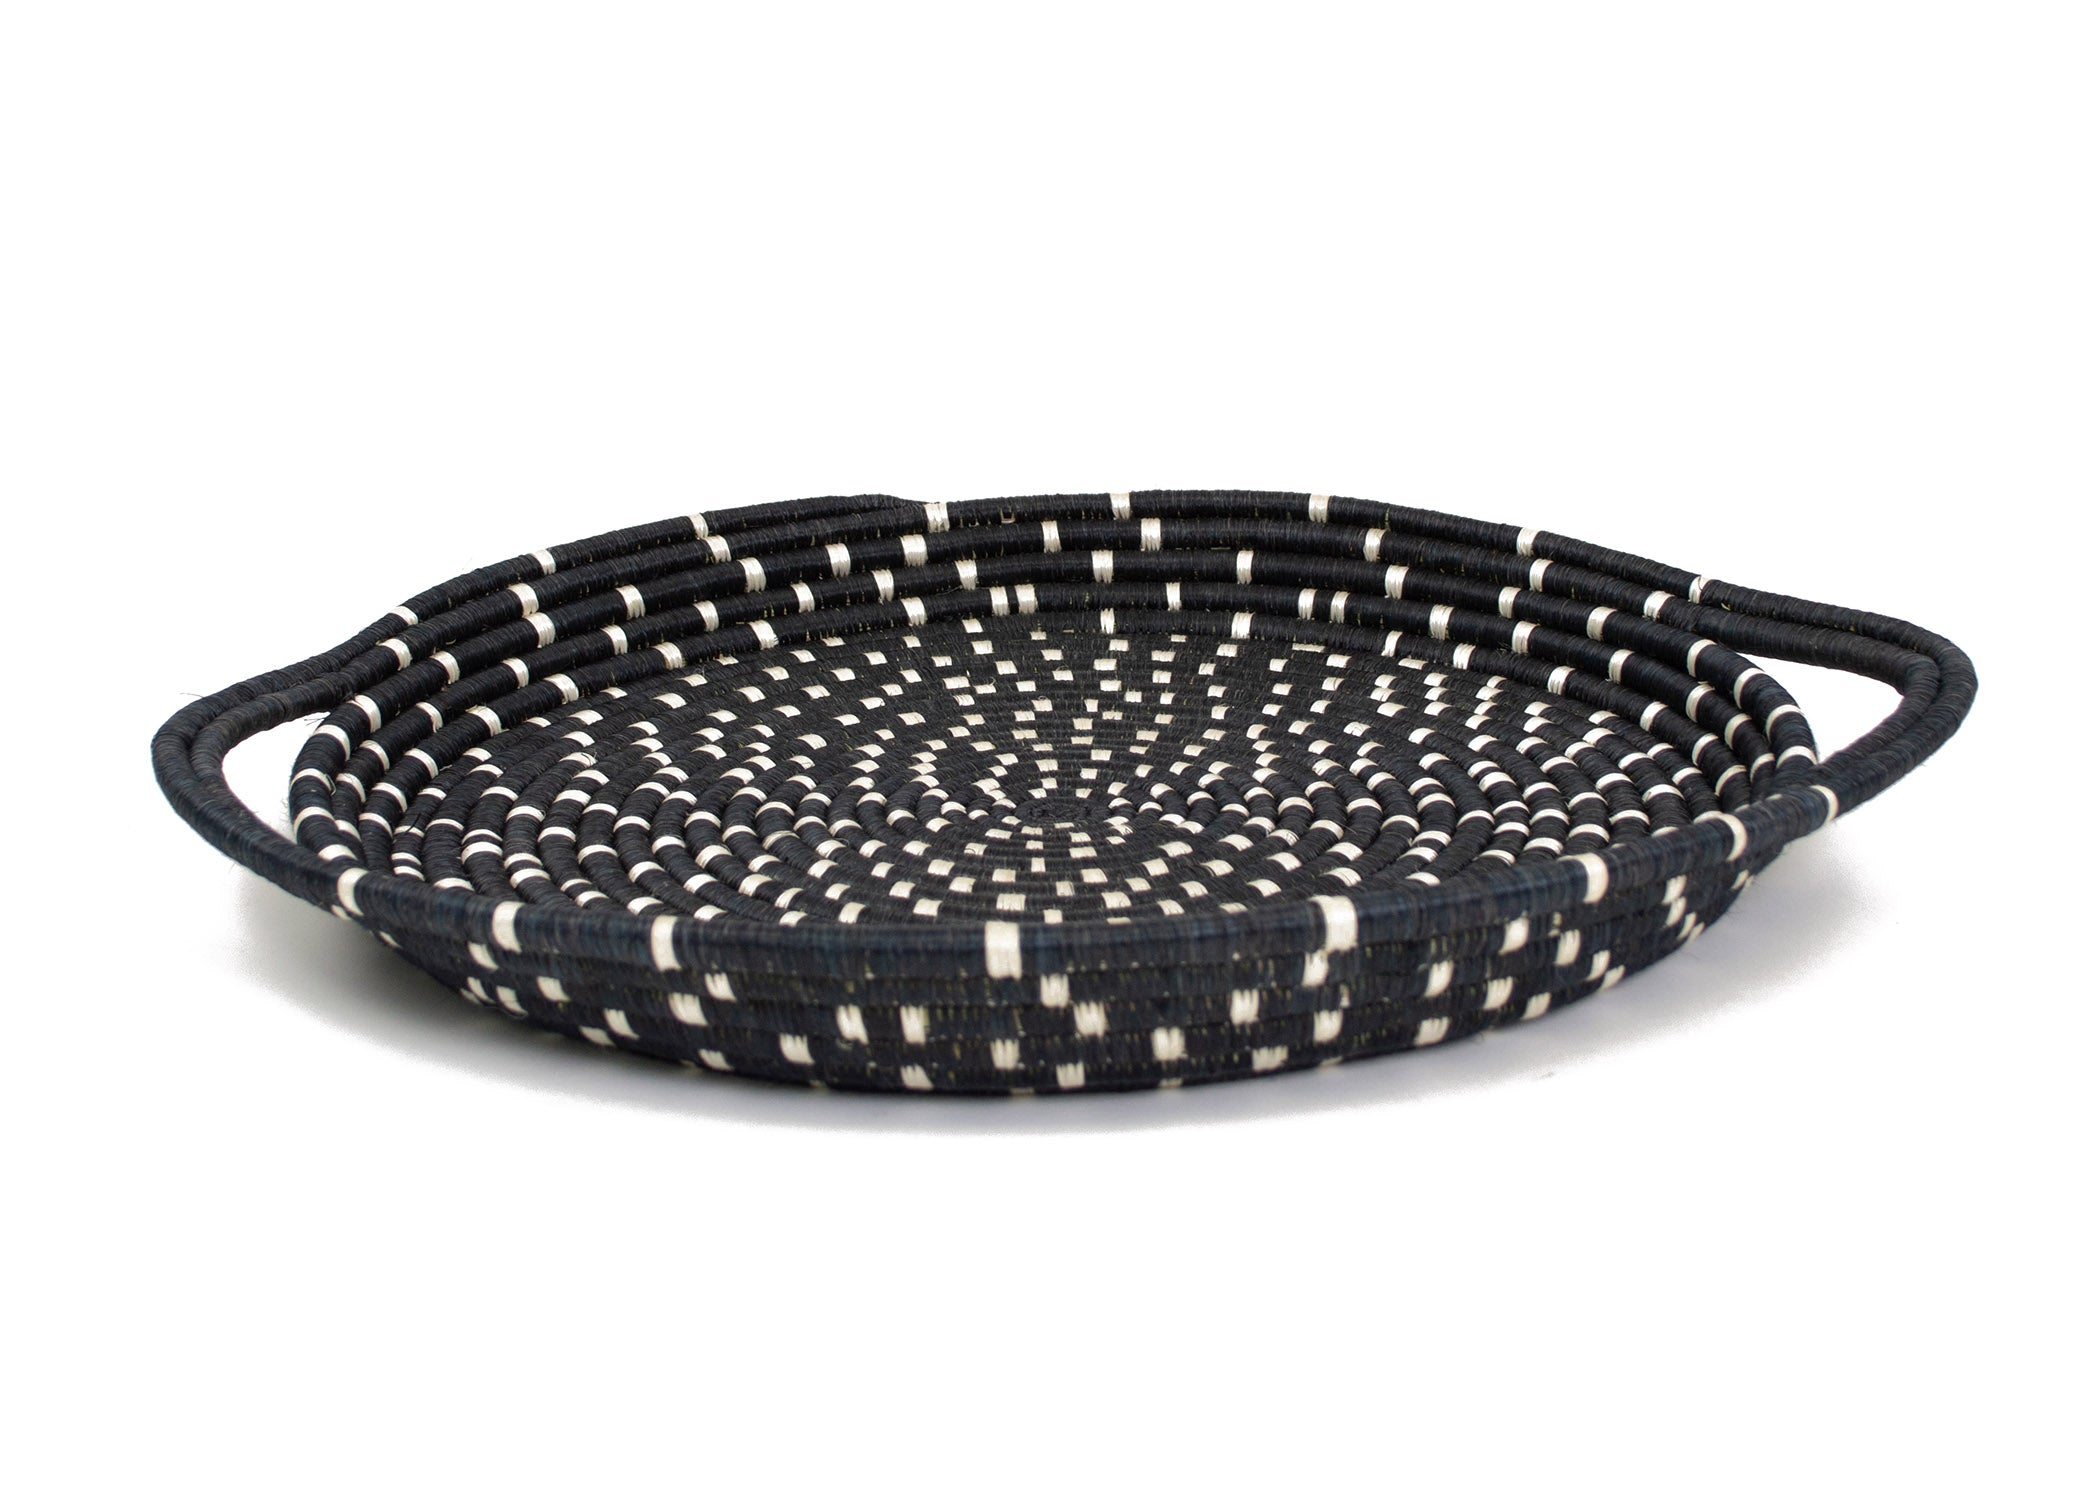 Speckled Black Serving Tray with Handles - KAZI - Artisan made high quality home decor and wall art